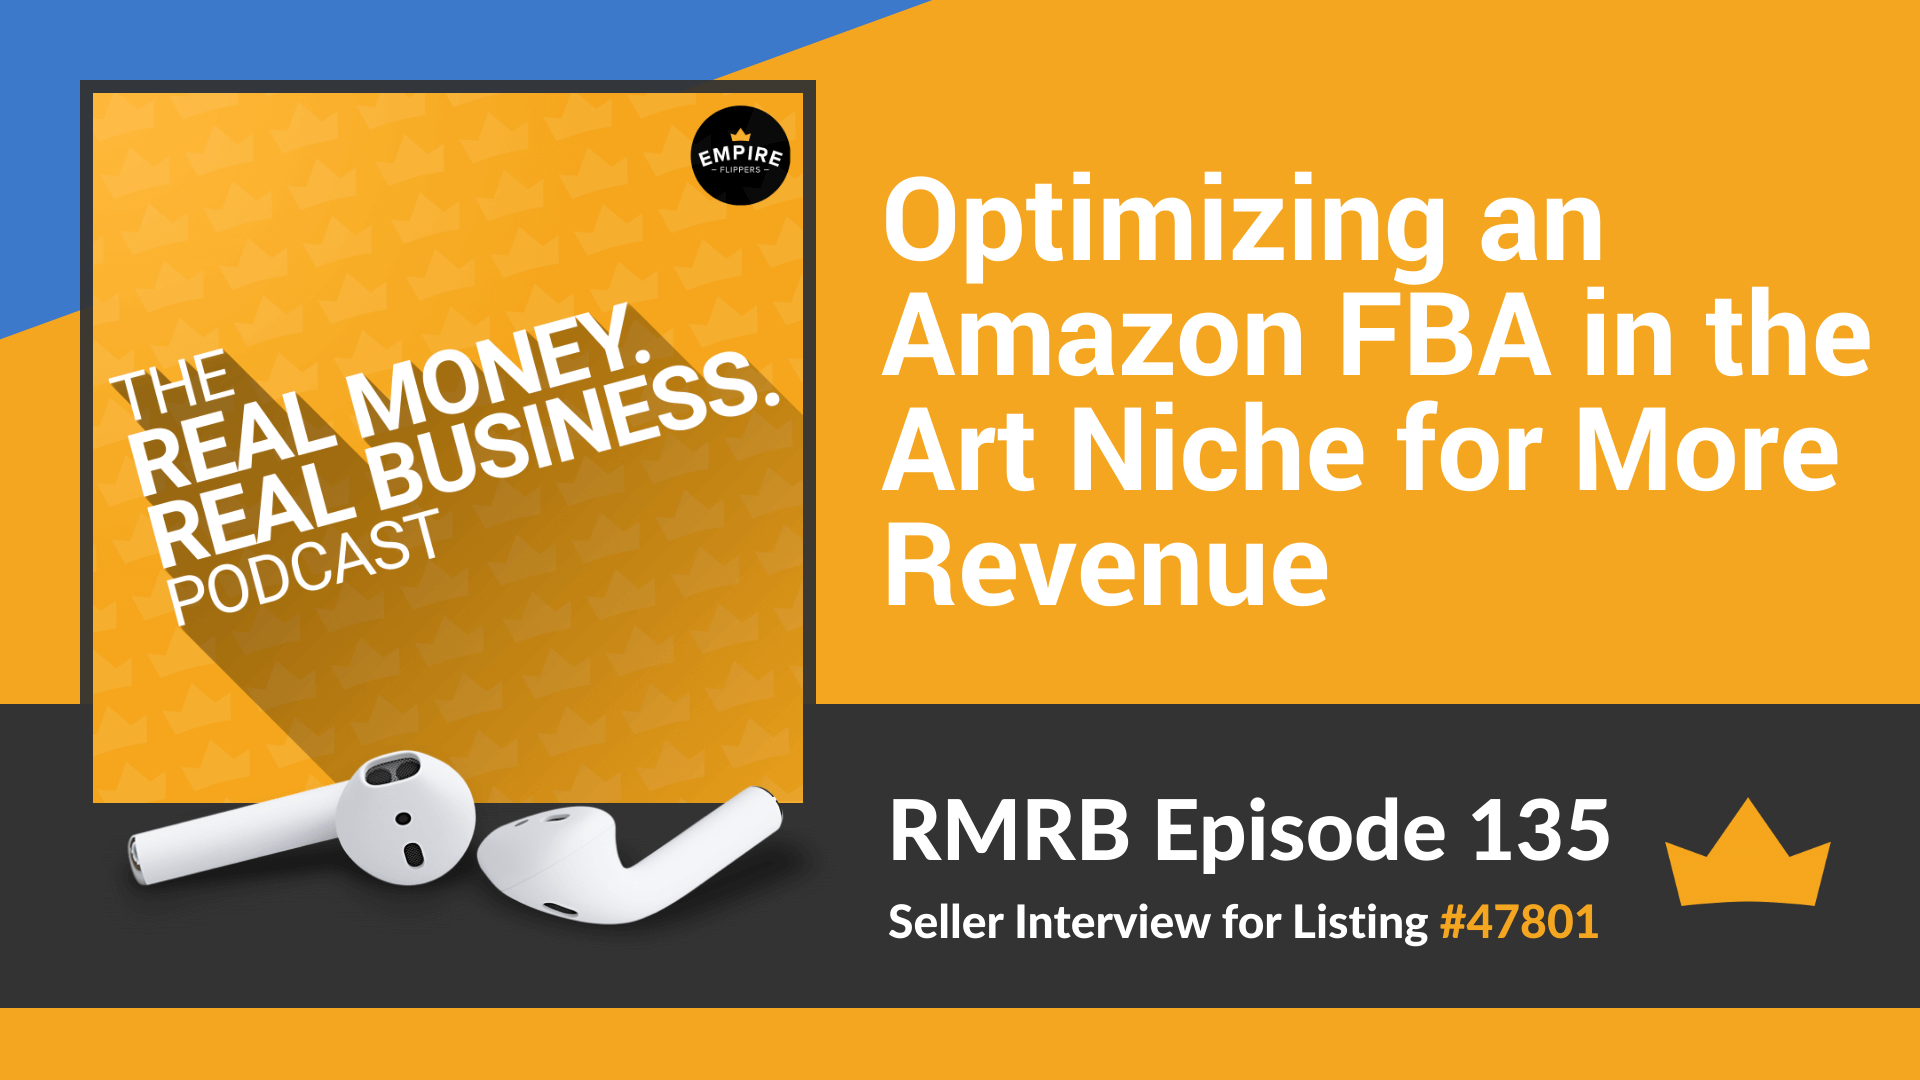 RMRB 135: Optimizing an Amazon FBA in the Art Niche for More Revenue